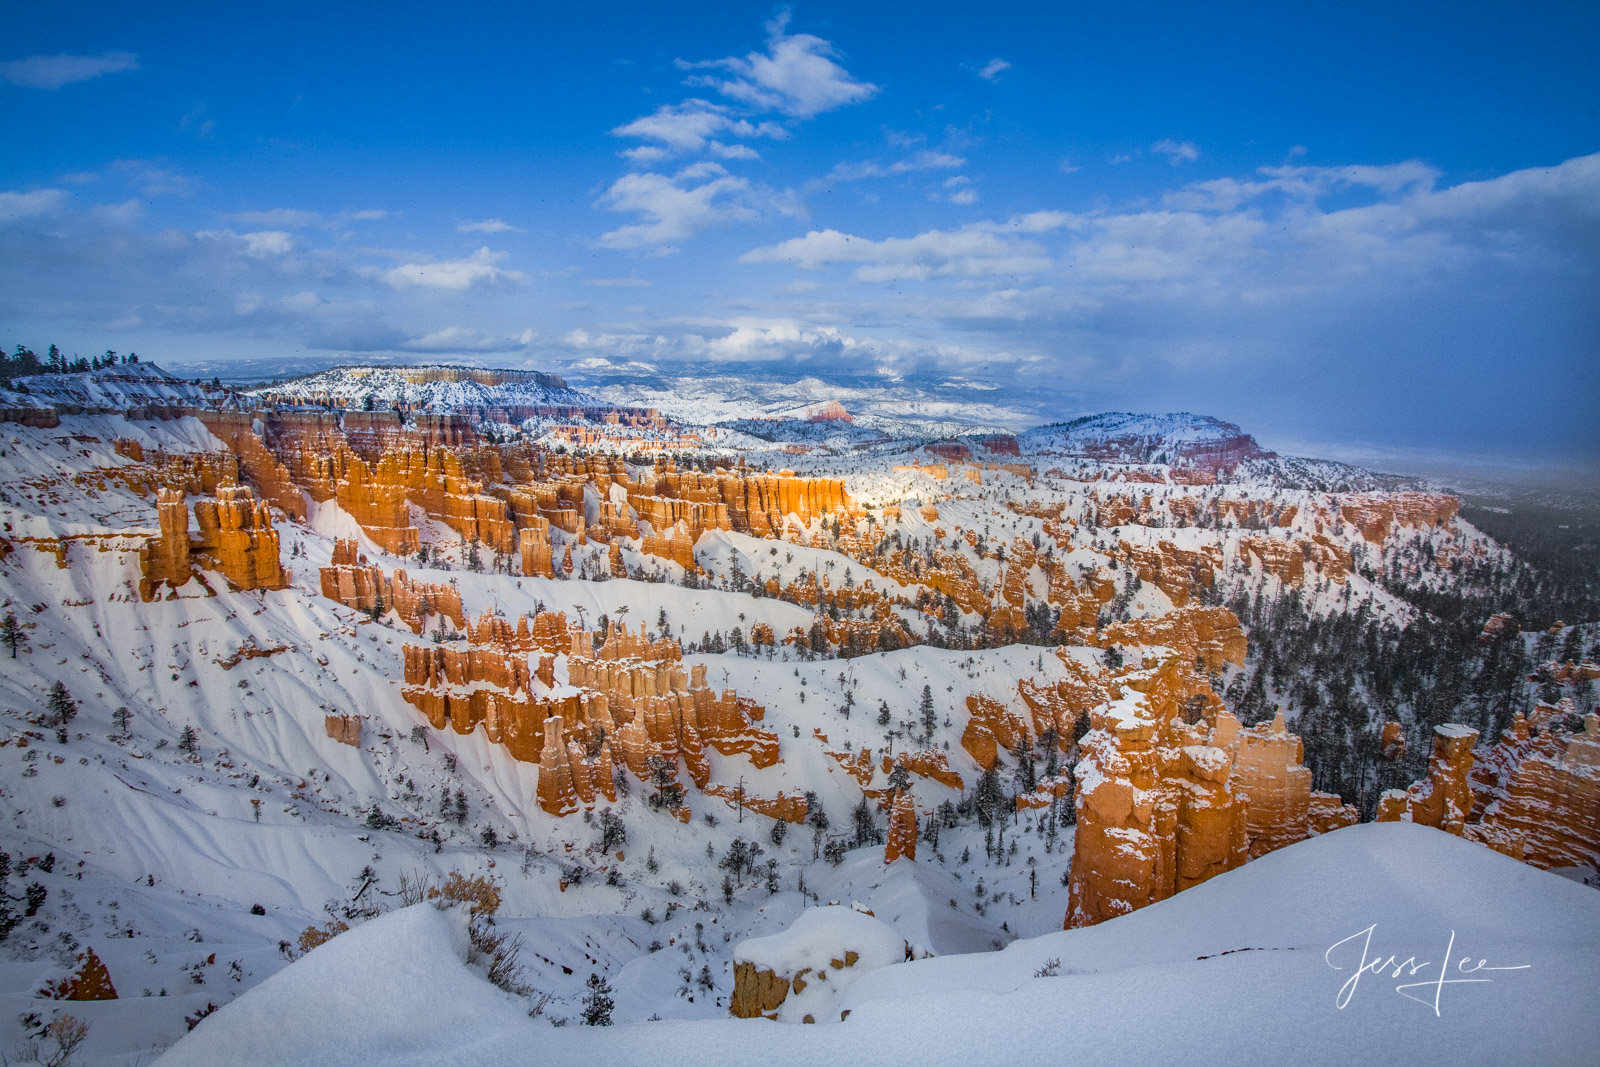 mountain photography, Bryce, Canyon, redrocks, snow, Utah, Large format, quality, museum, fine art, print, , jess lee, artist, western, cowboy, photographer, limited edition, high quality, high resolu, photo